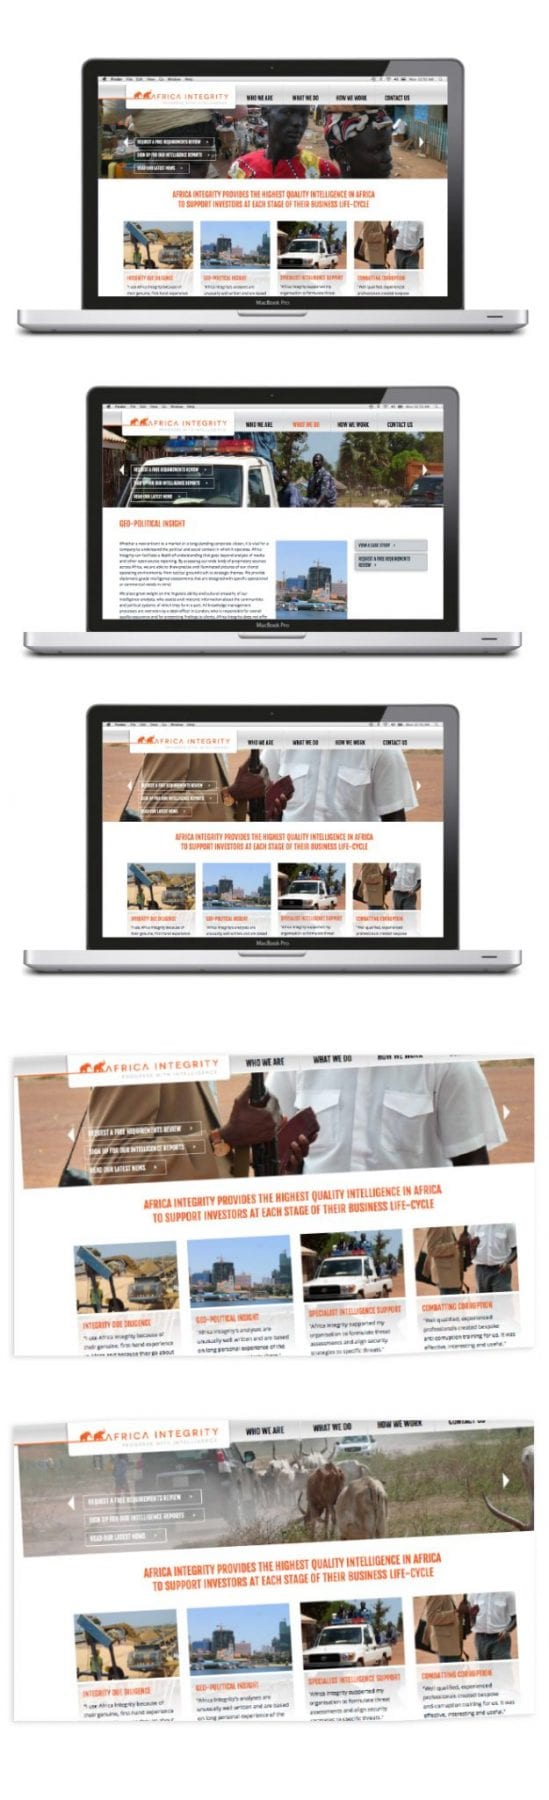 Image of africa integrity website designed by Graphic designer and branding designer Jessica Croome of Perth WA